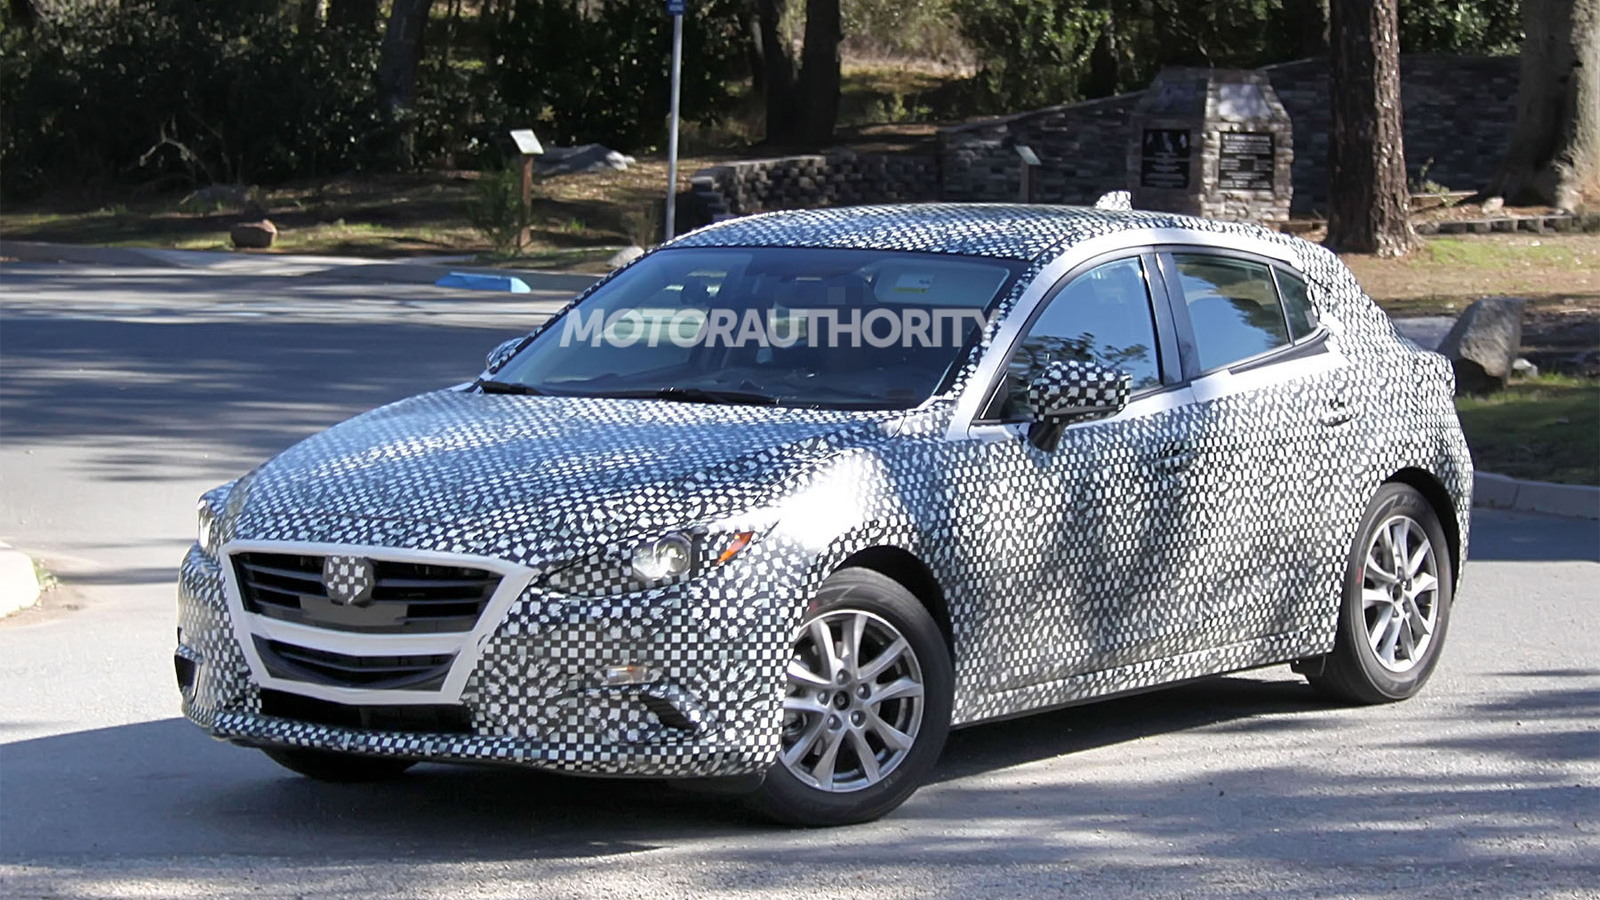 2014 Mazda Mazda3 Hatchback spy shots